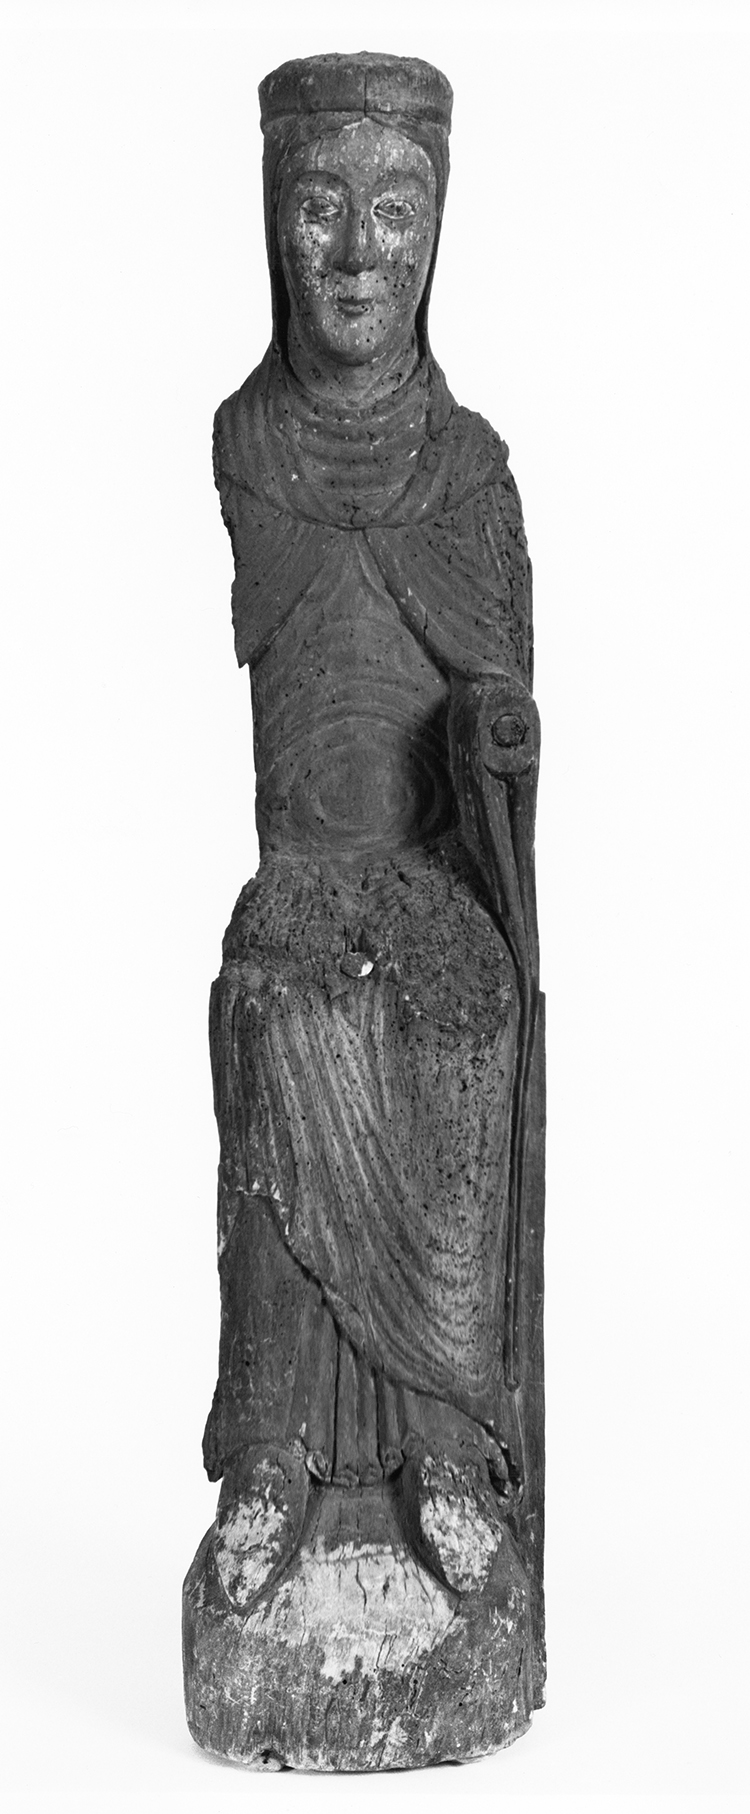 Figure 18: Enthroned Virgin, Île de France, third quarter of the 12th century, wood with polychromy, 44 x 9 ½ x 8 in., long-term loan of Glencairn Museum.